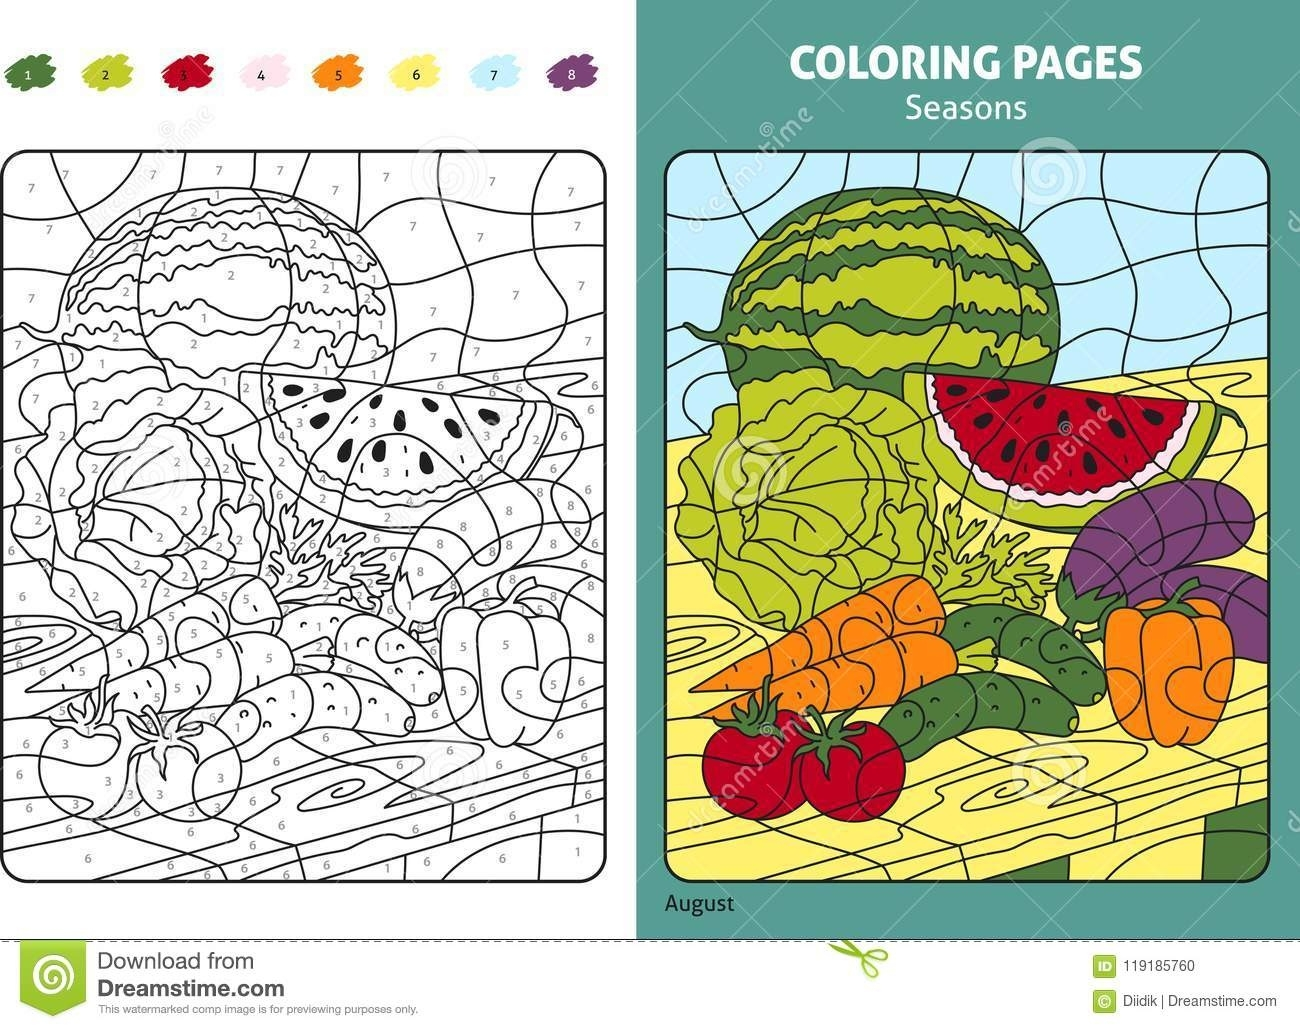 Seasons Coloring Page For Kids, August Month Stock Vector  August Printable Images To Color